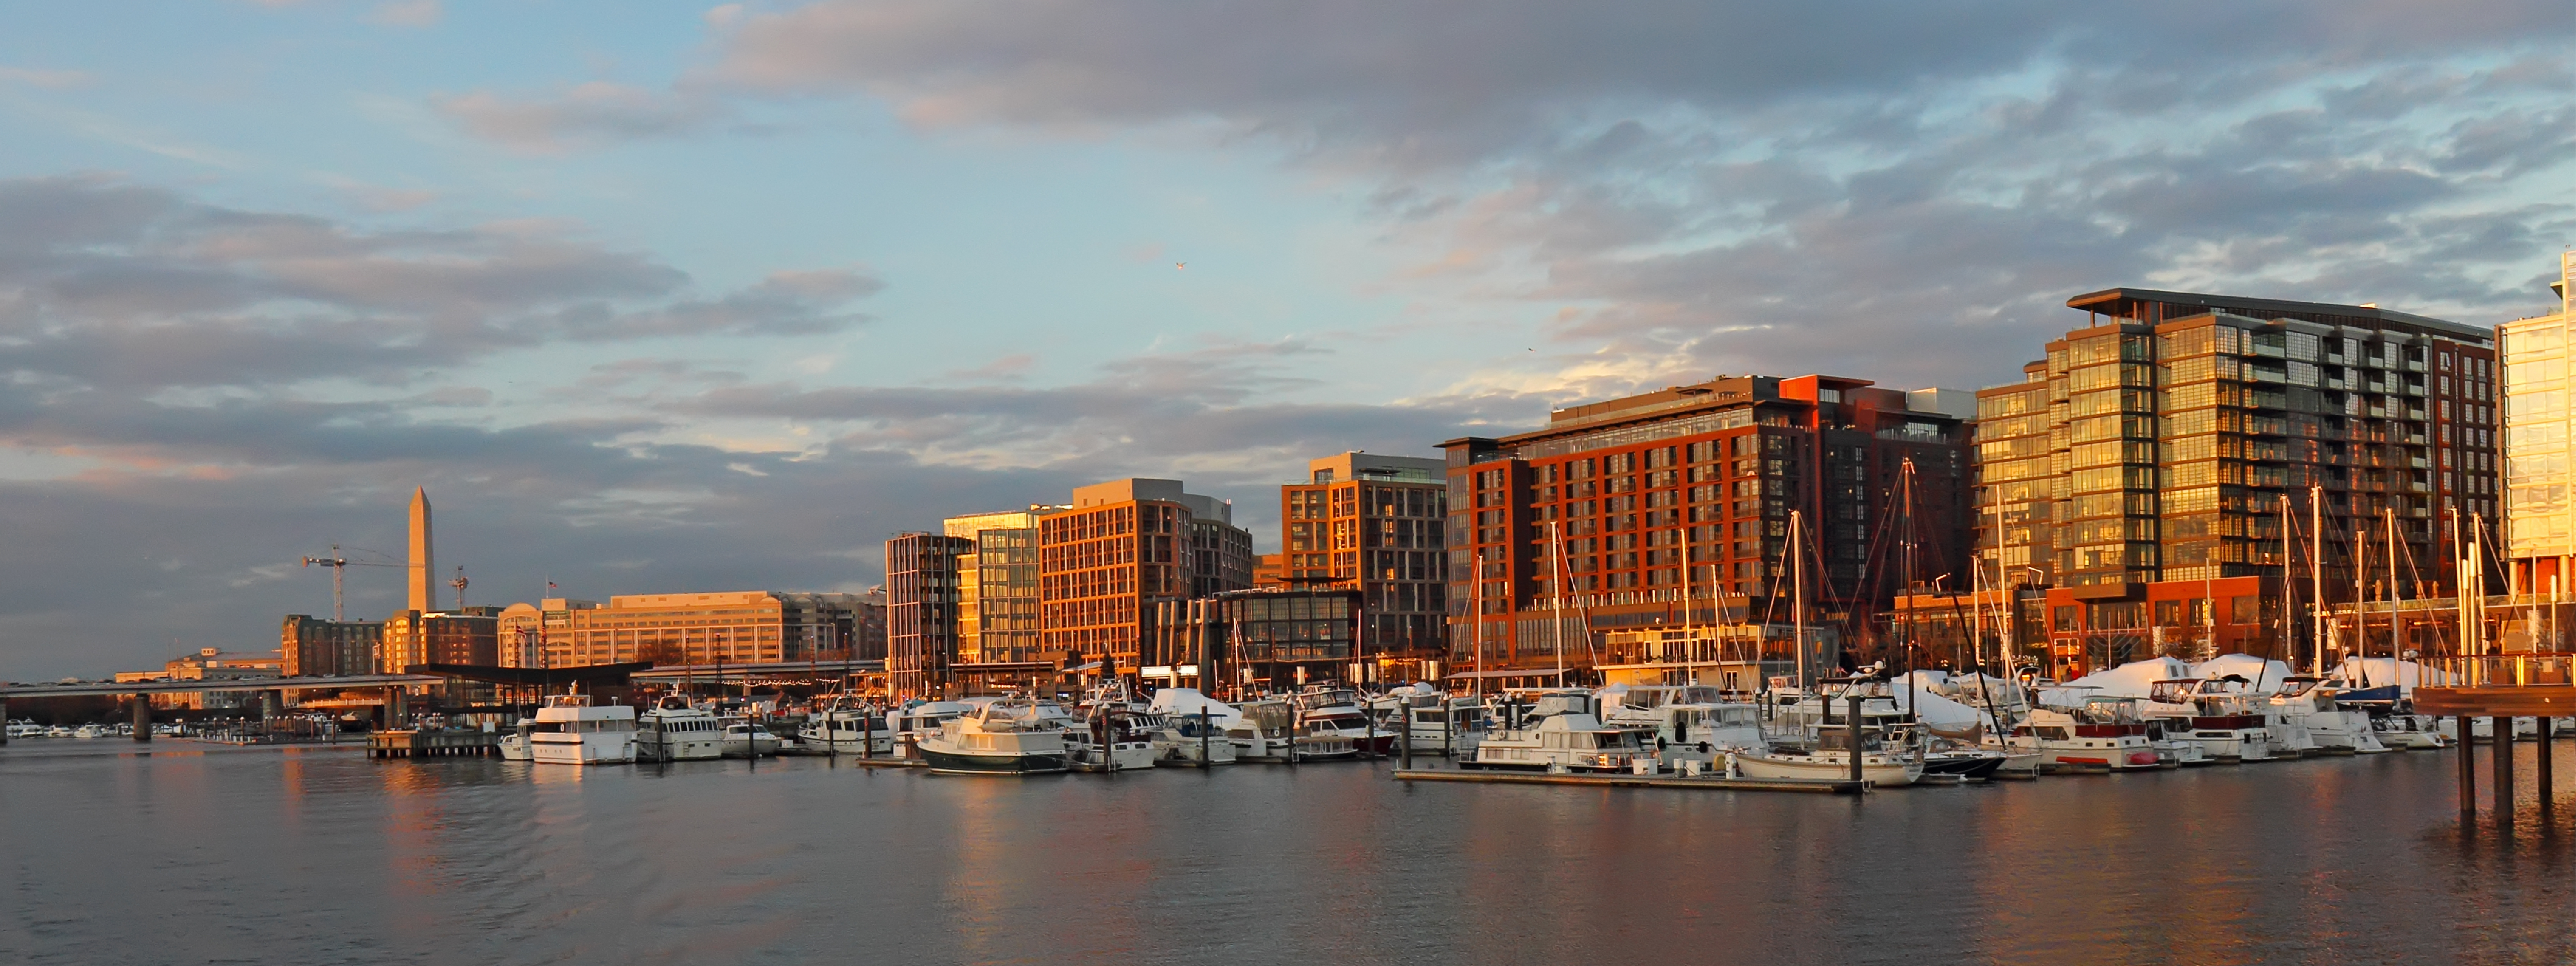 Your Guide to The Wharf in Washington, D.C.